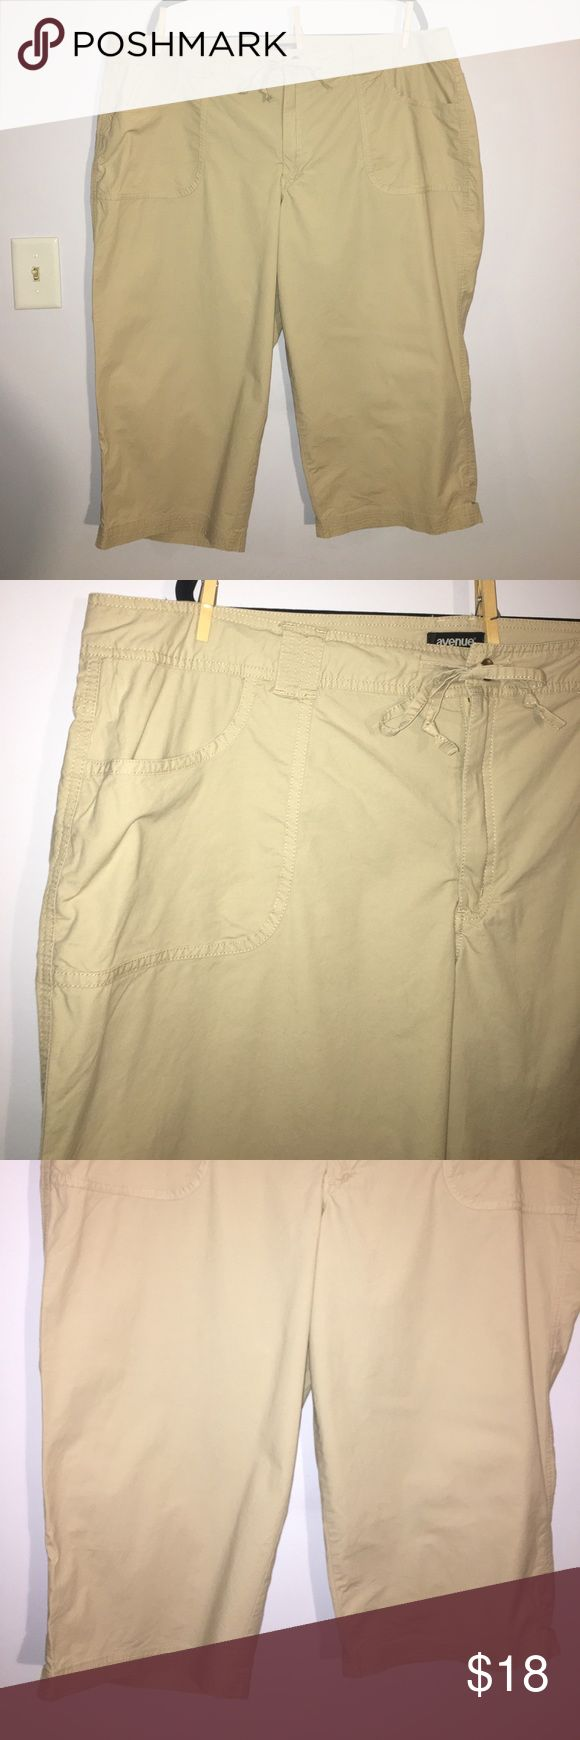 """Avenue Tan Khaki Capris size 22 Up for grabs is this pair of capris from Avenue. They are a size 22 with a 21.5"""" inseam and a 44"""" waist and 56"""" hips. These capris are a lightweight cotton-spandex blend in a tan color. They stretch well and have a zipper and button closure with a tie drawstring. These crops have been gently worn and are in wonderful condition. Avenue Pants Capris"""